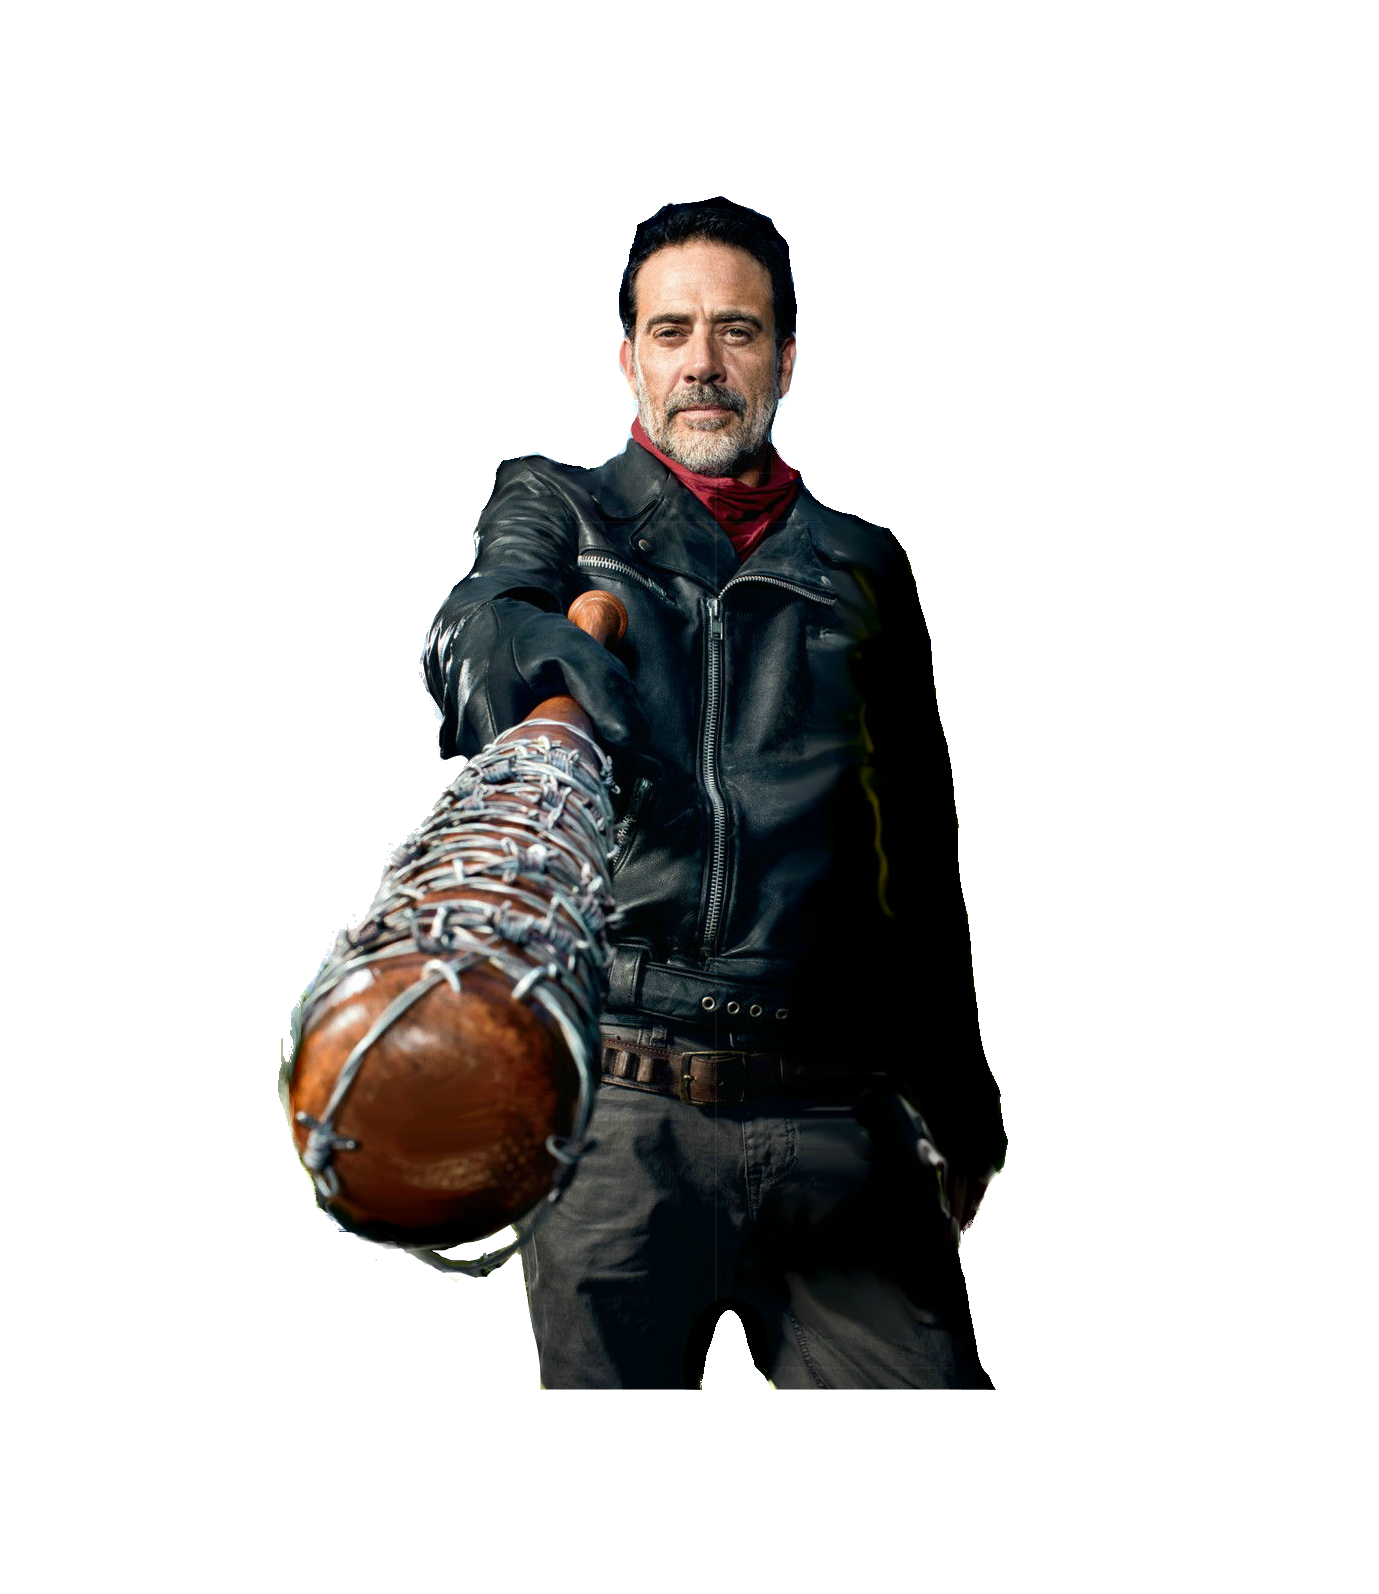 Twd Photo PNG Image